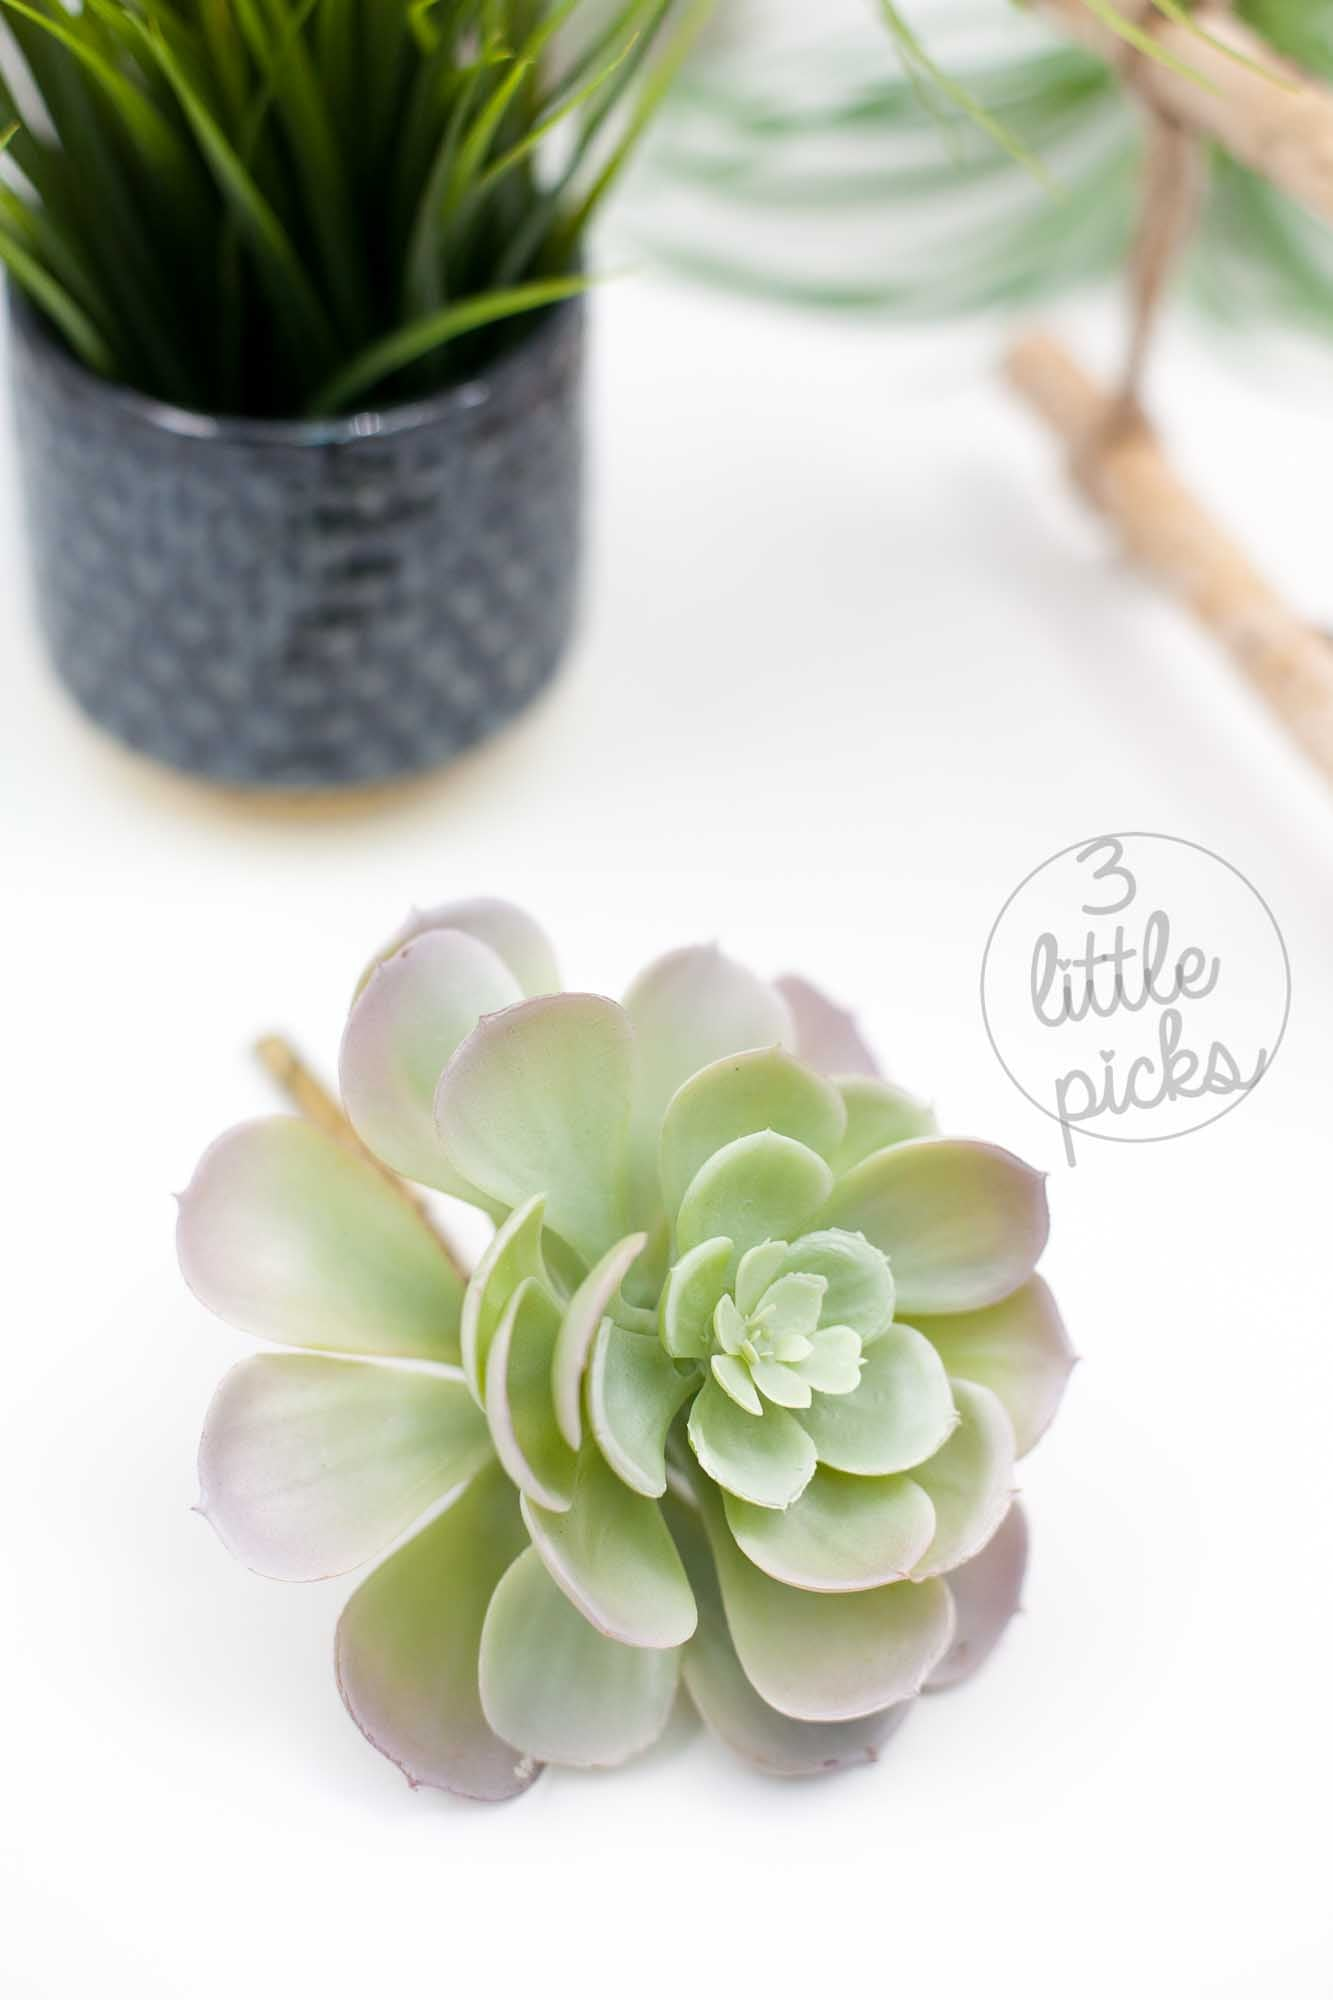 Faux Succulent (Part 2), Decor, 3littlepicks - 3LittlePicks